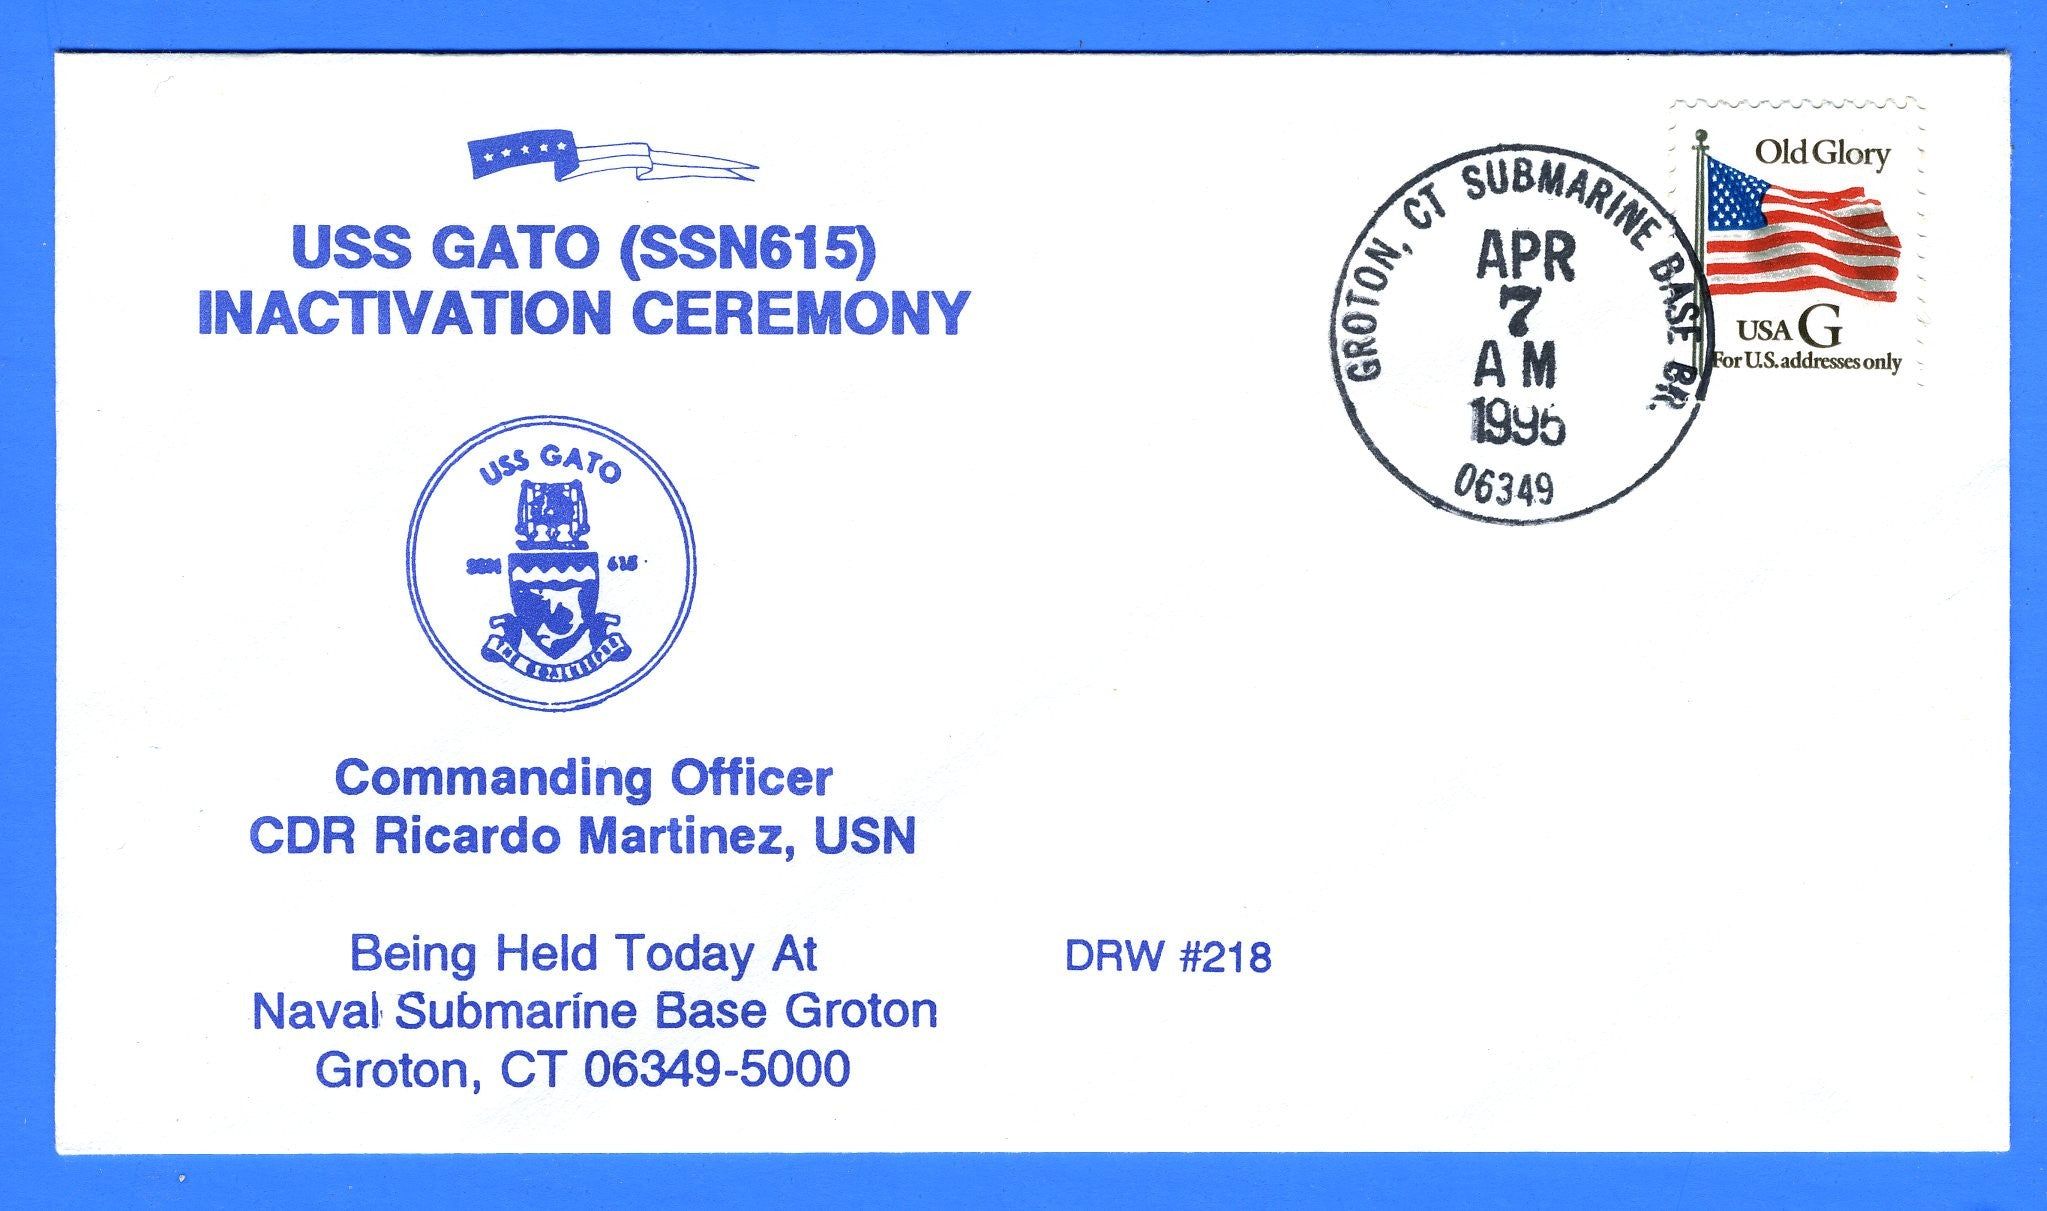 USS Gato SSN-615 Inactivation Ceremony Apr 7, 1995 - DRW 218